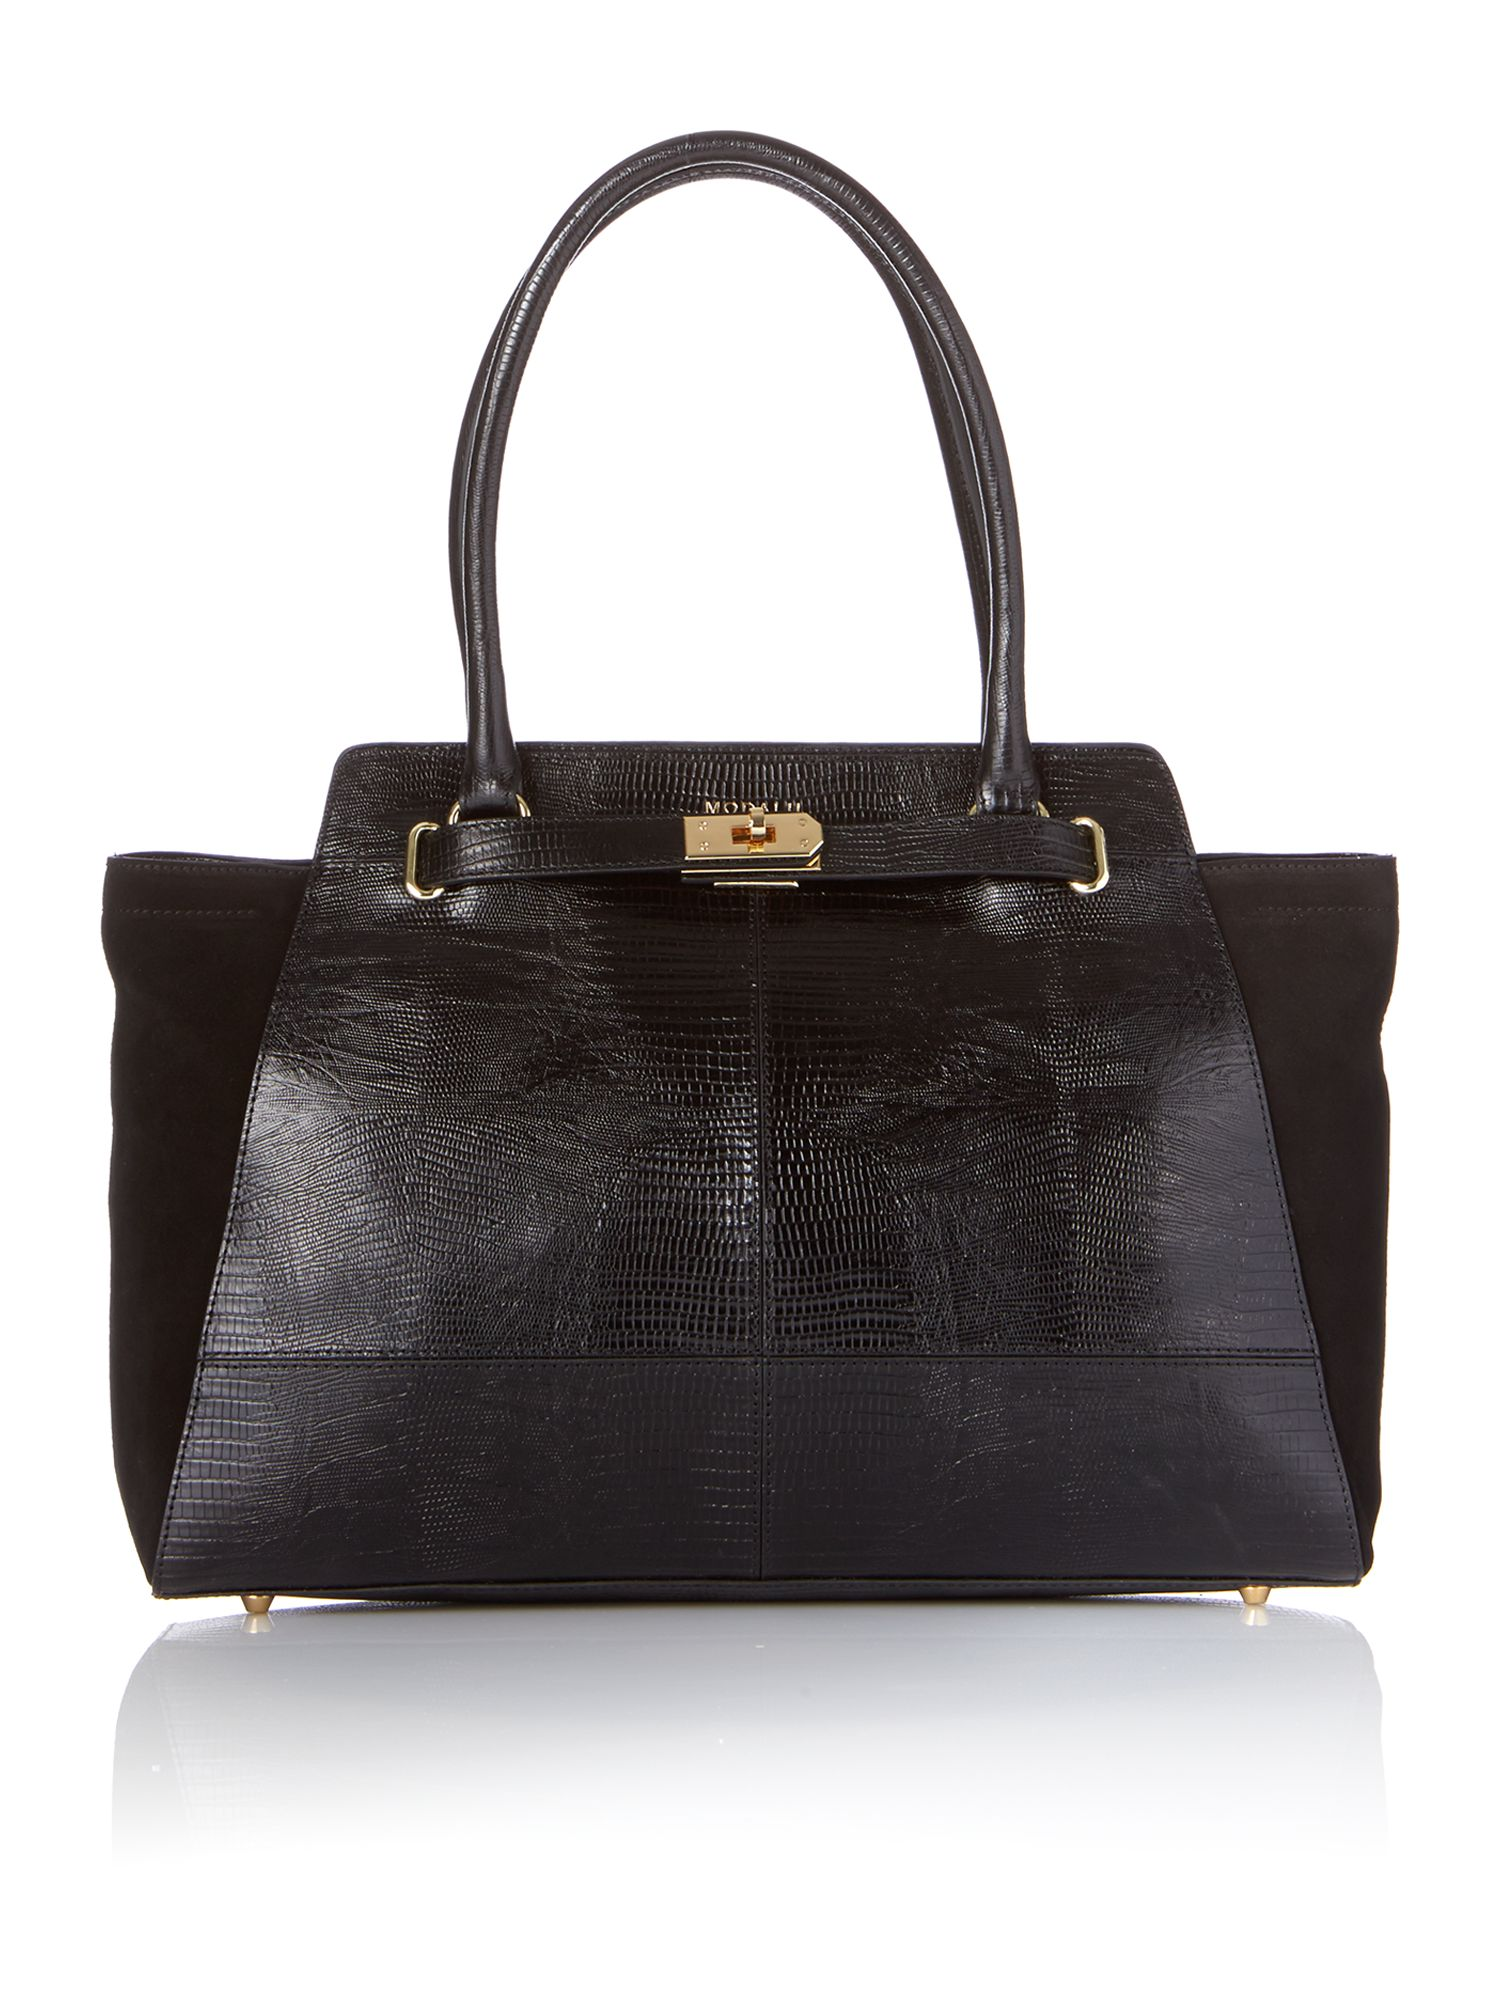 Marlow black tote bag